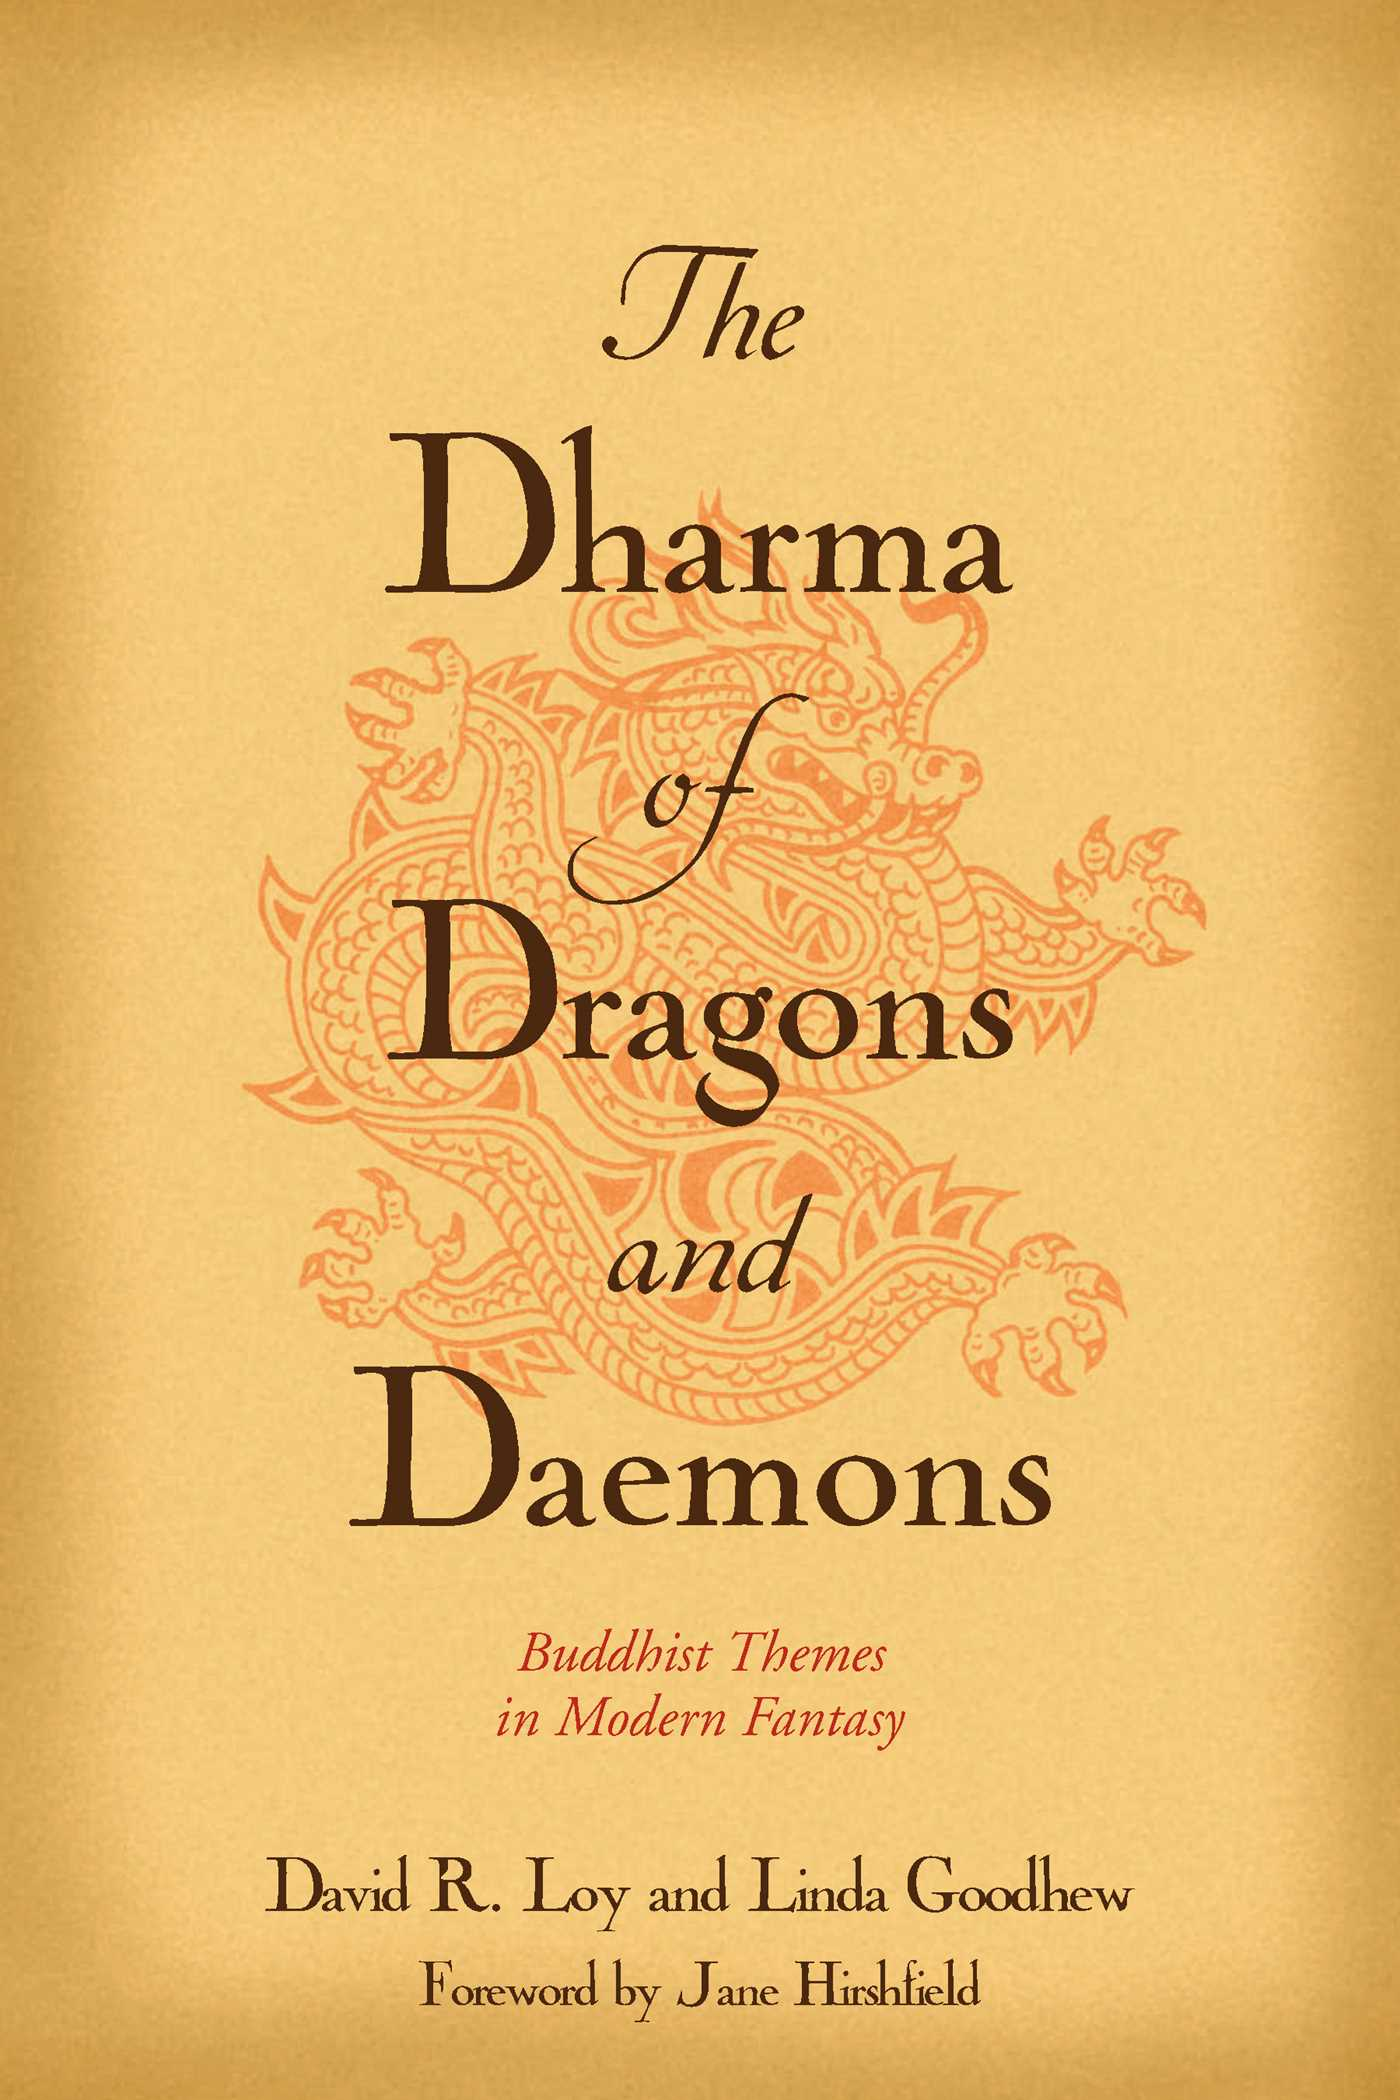 The-dharma-of-dragons-and-daemons-9780861714766_hr